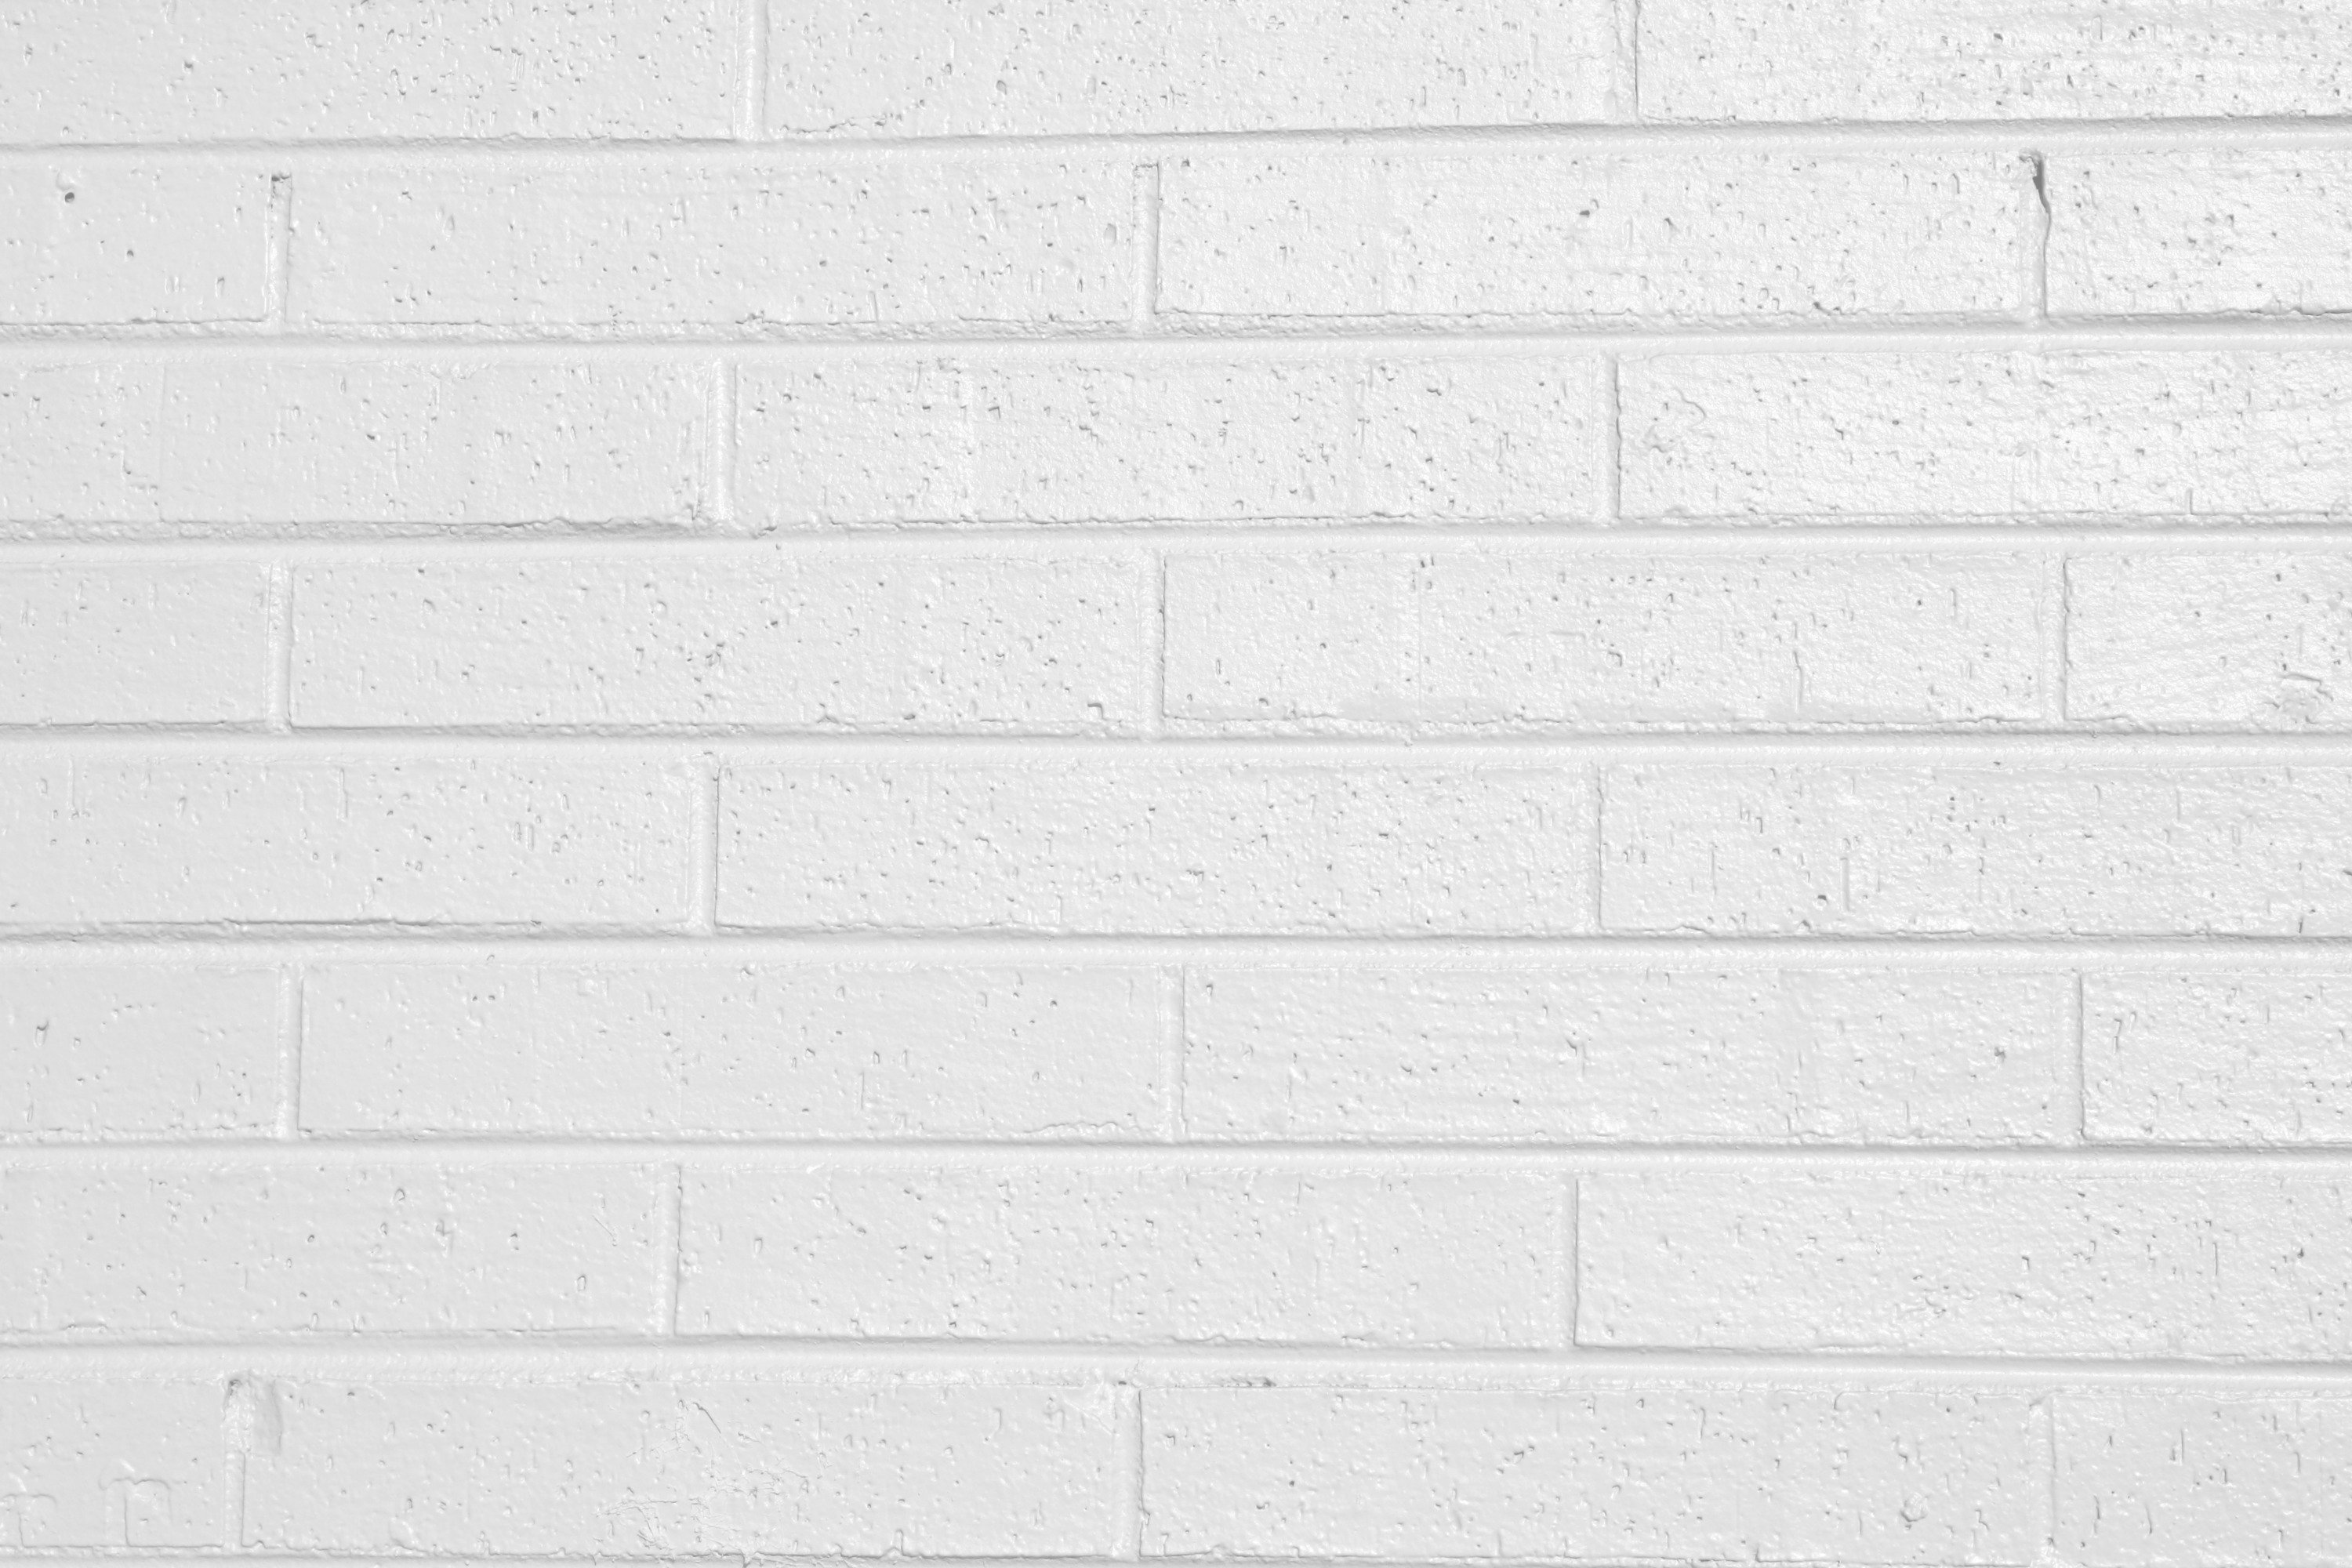 Painted cinder block wall texture - White Painted Brick Wall Texture